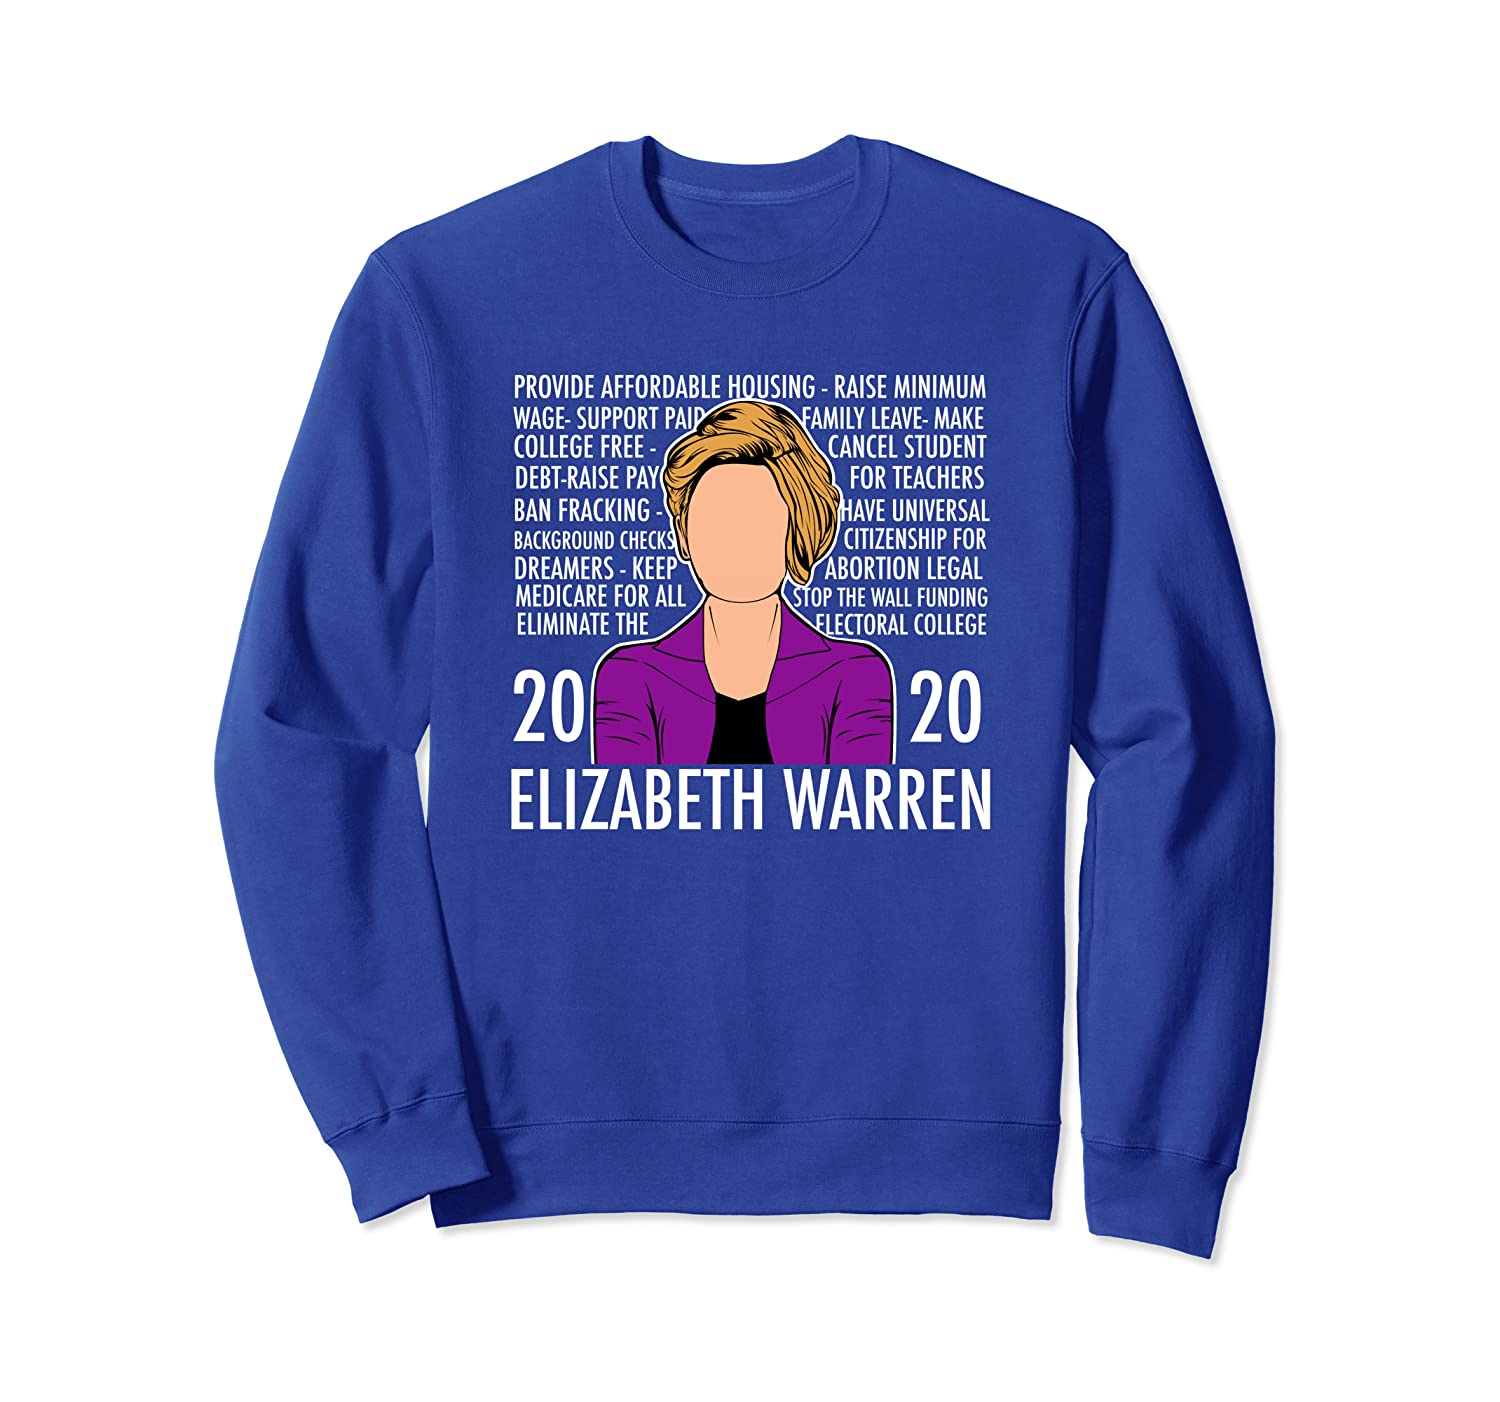 Reasons to Vote for Elizabeth Warren - Democratic Platform Sweatshirt Unisex Tshirt